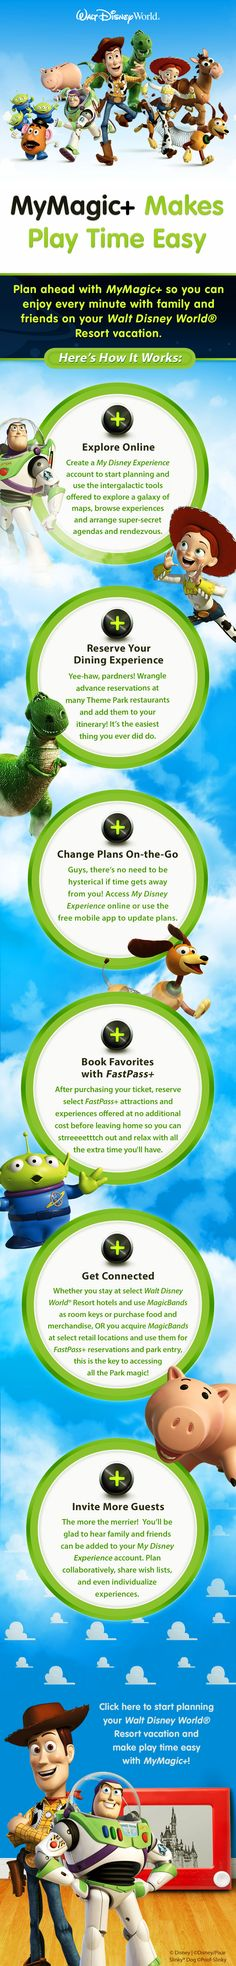 Learn how to plan ahead with MyMagic+ at Walt Disney World! #ToyStory